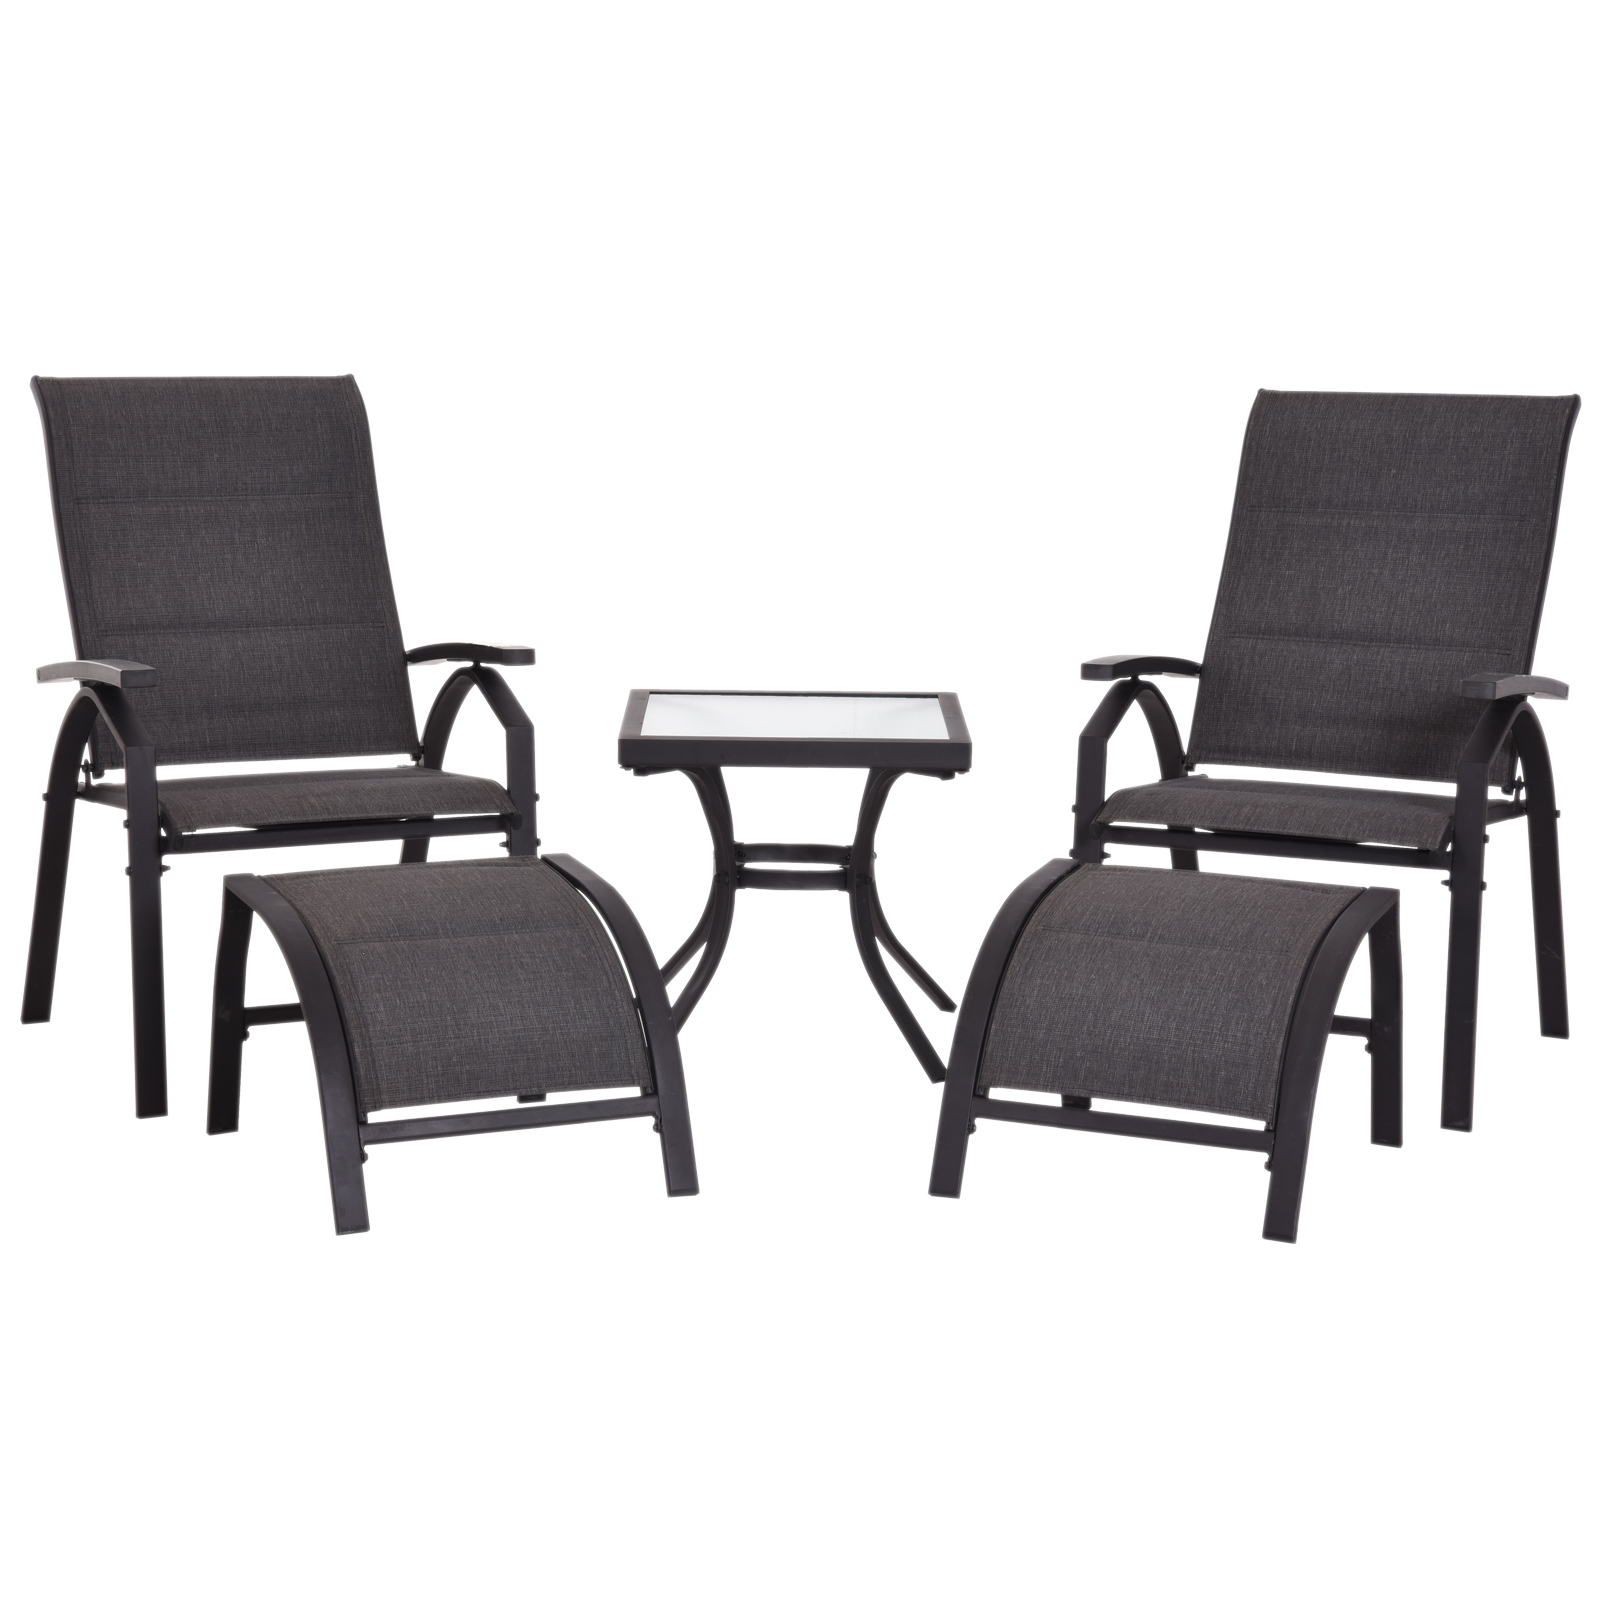 Outsunny Set Beach Chairs 5 Pieces 2 Adjustable Footrest And Coffee Table 2 Chairs Garden Metal And Textilene Black